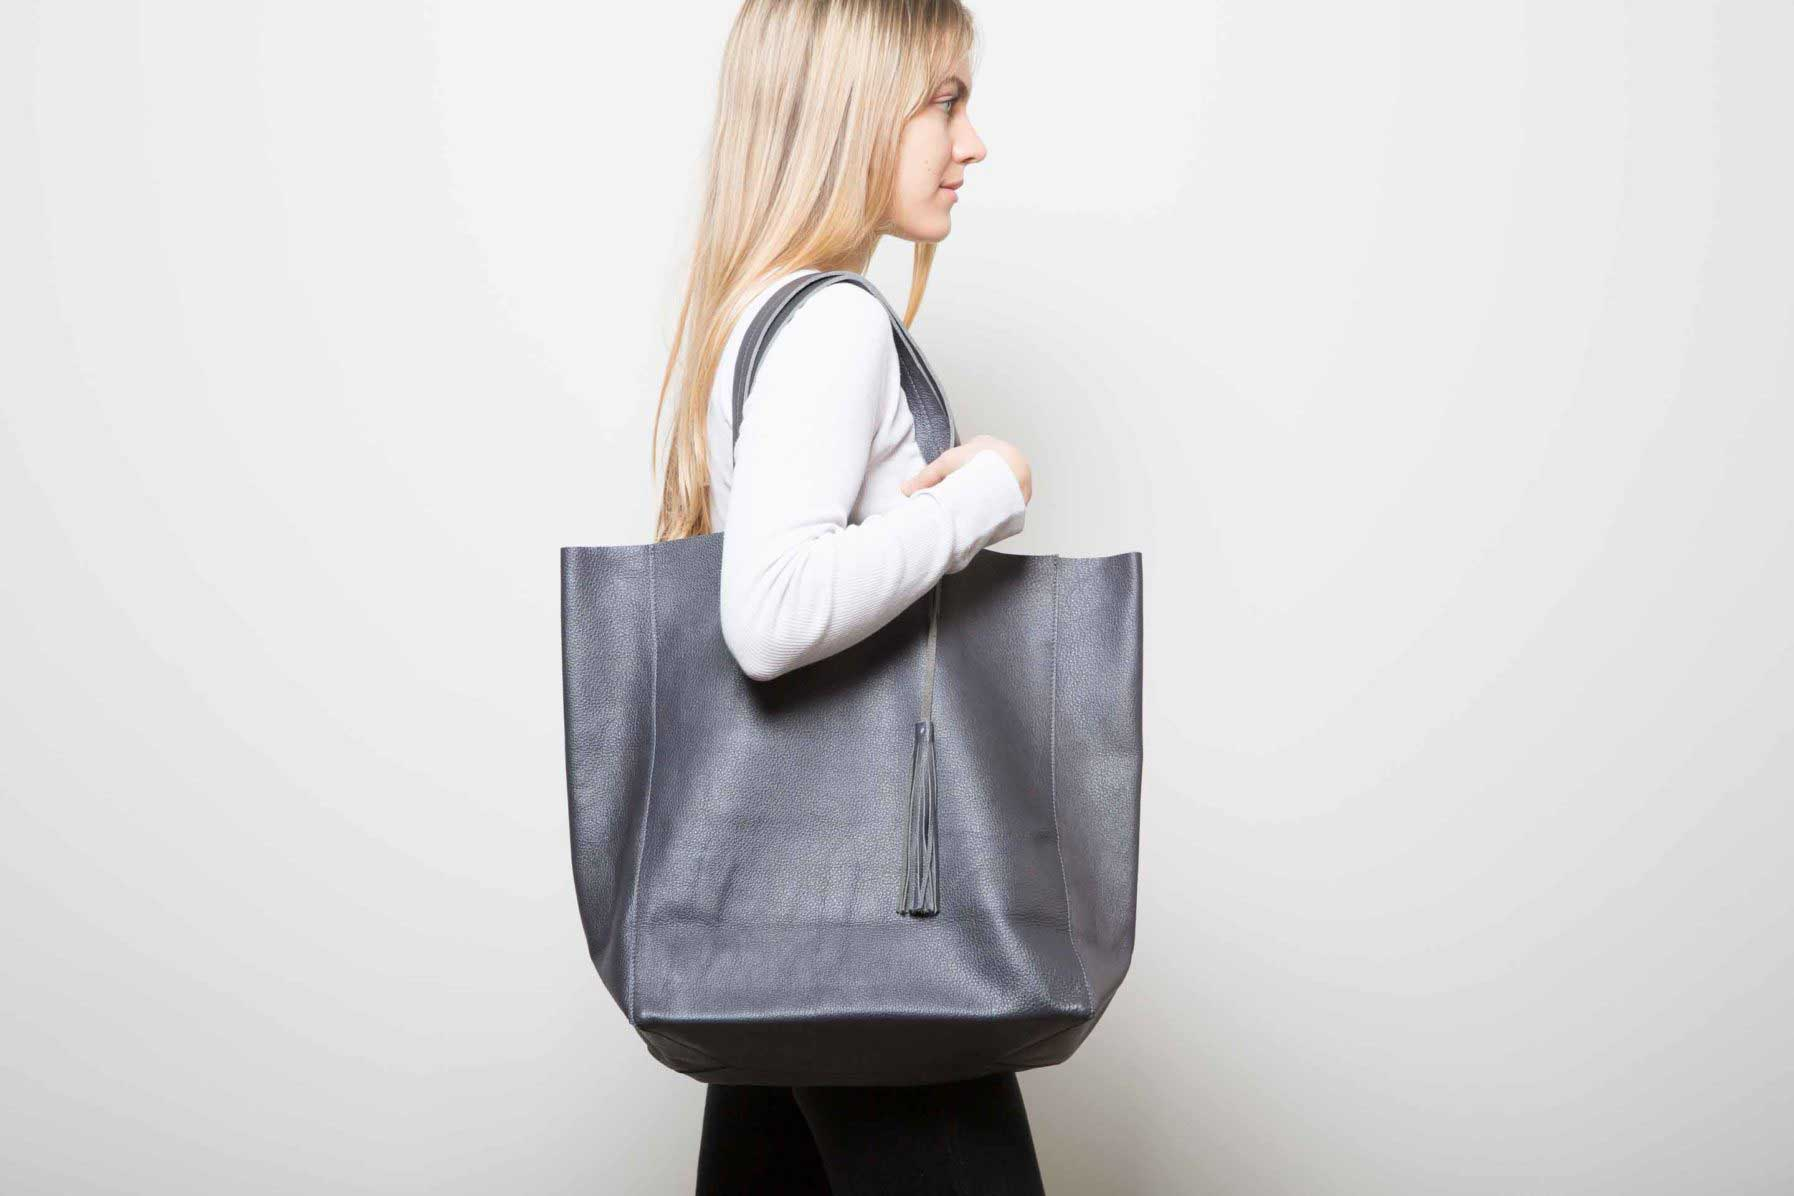 Visuel - Grand Sac Shopper en Cuir Gris Anthracite - porté de profil - ordinari.shop